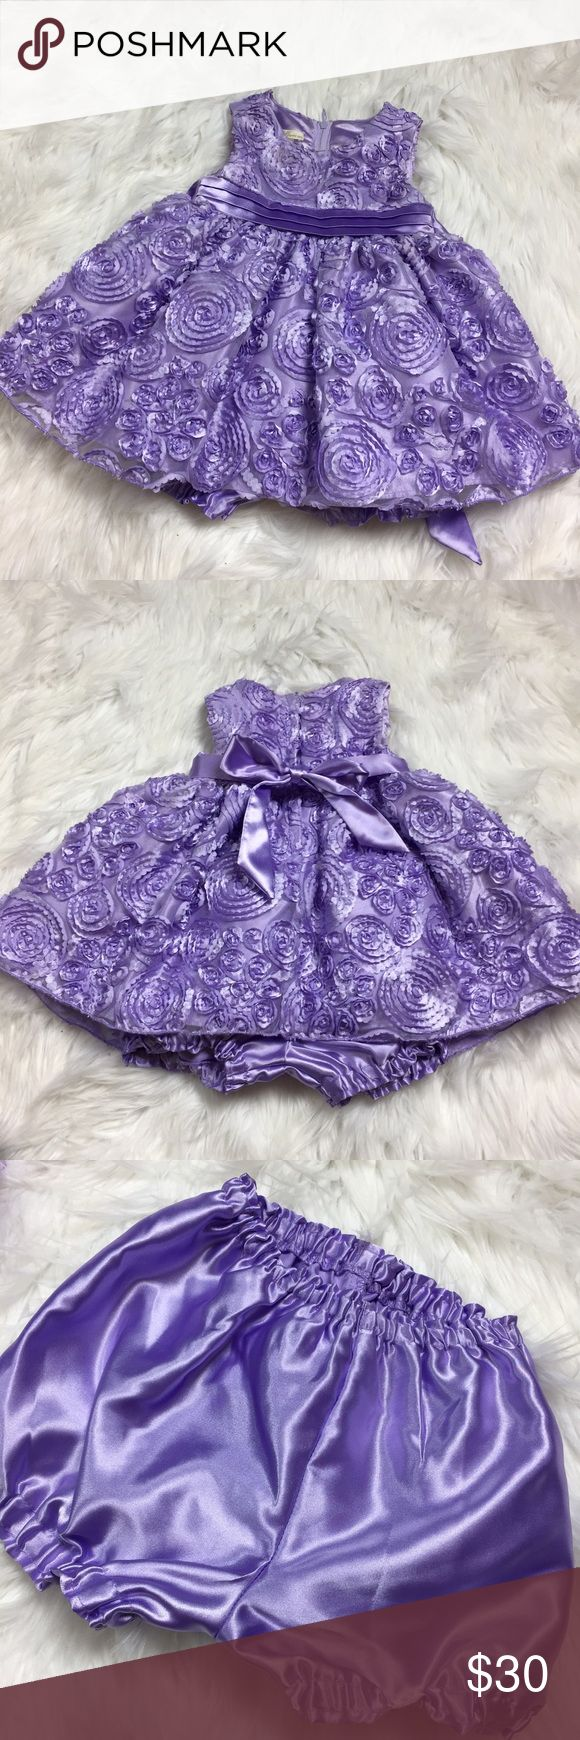 •• American Princess • Purple Baby/Toddler Dress Beautifully, Detailed Lavender Purple, Spring Dress by American Princess (worn once). Dress comes from a pet-free, smoke-free home. Color - Light Purple  Size: 12 months  Please inspect all pictures prior to purchase and message me with any questions you have. American Princess Dresses Formal